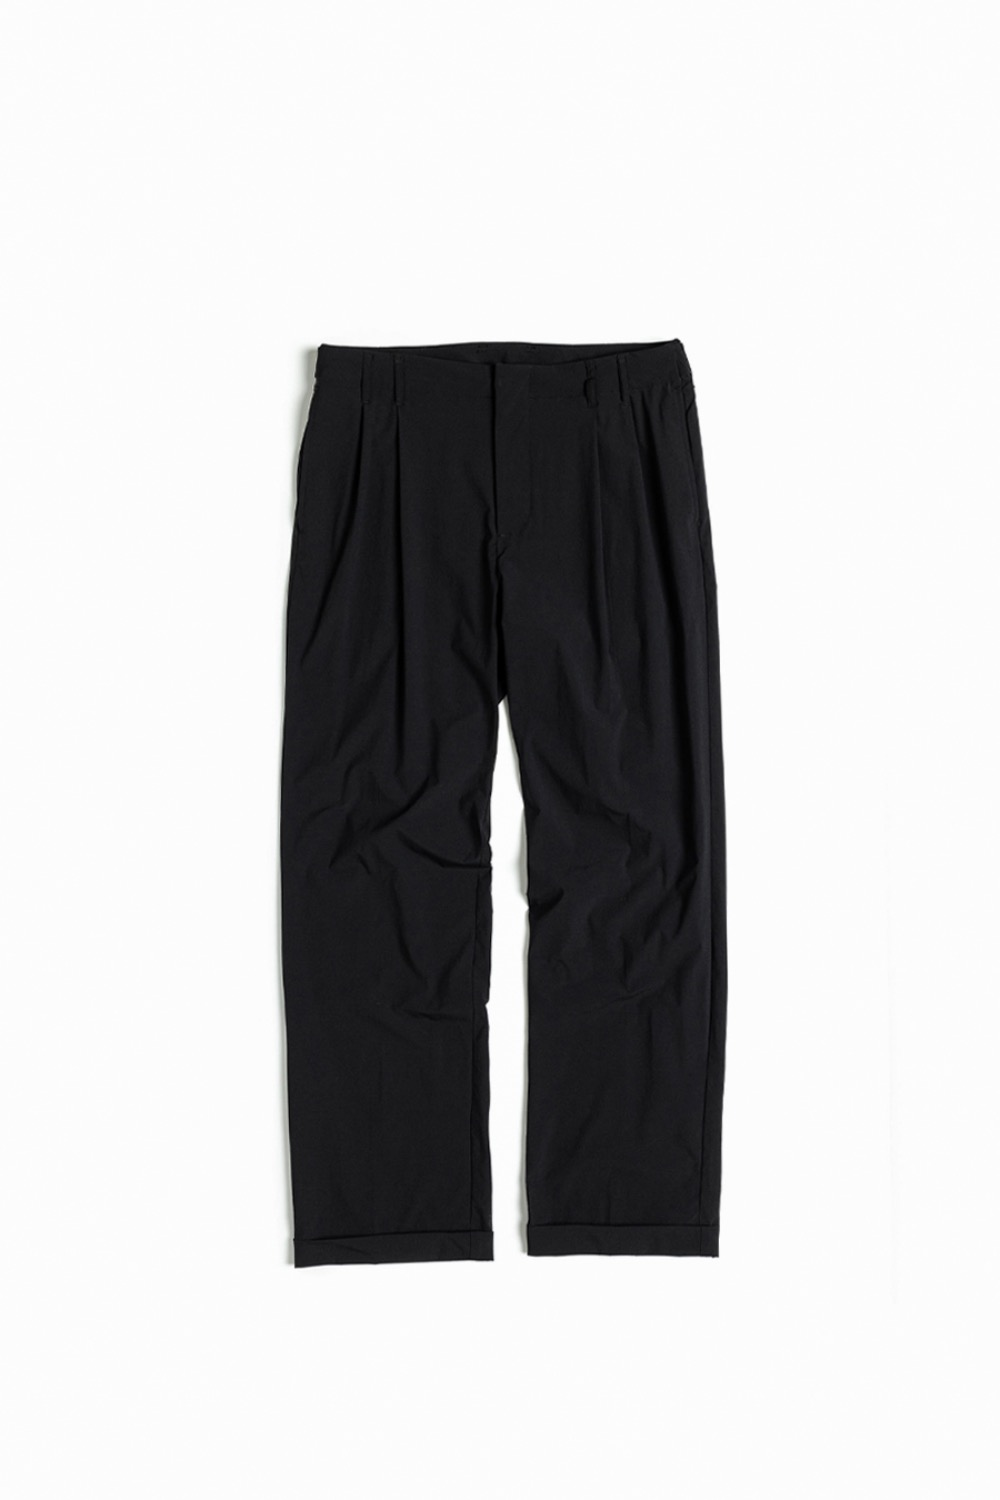 (MIZUNO) DW WIDE PANT DARK NAVY